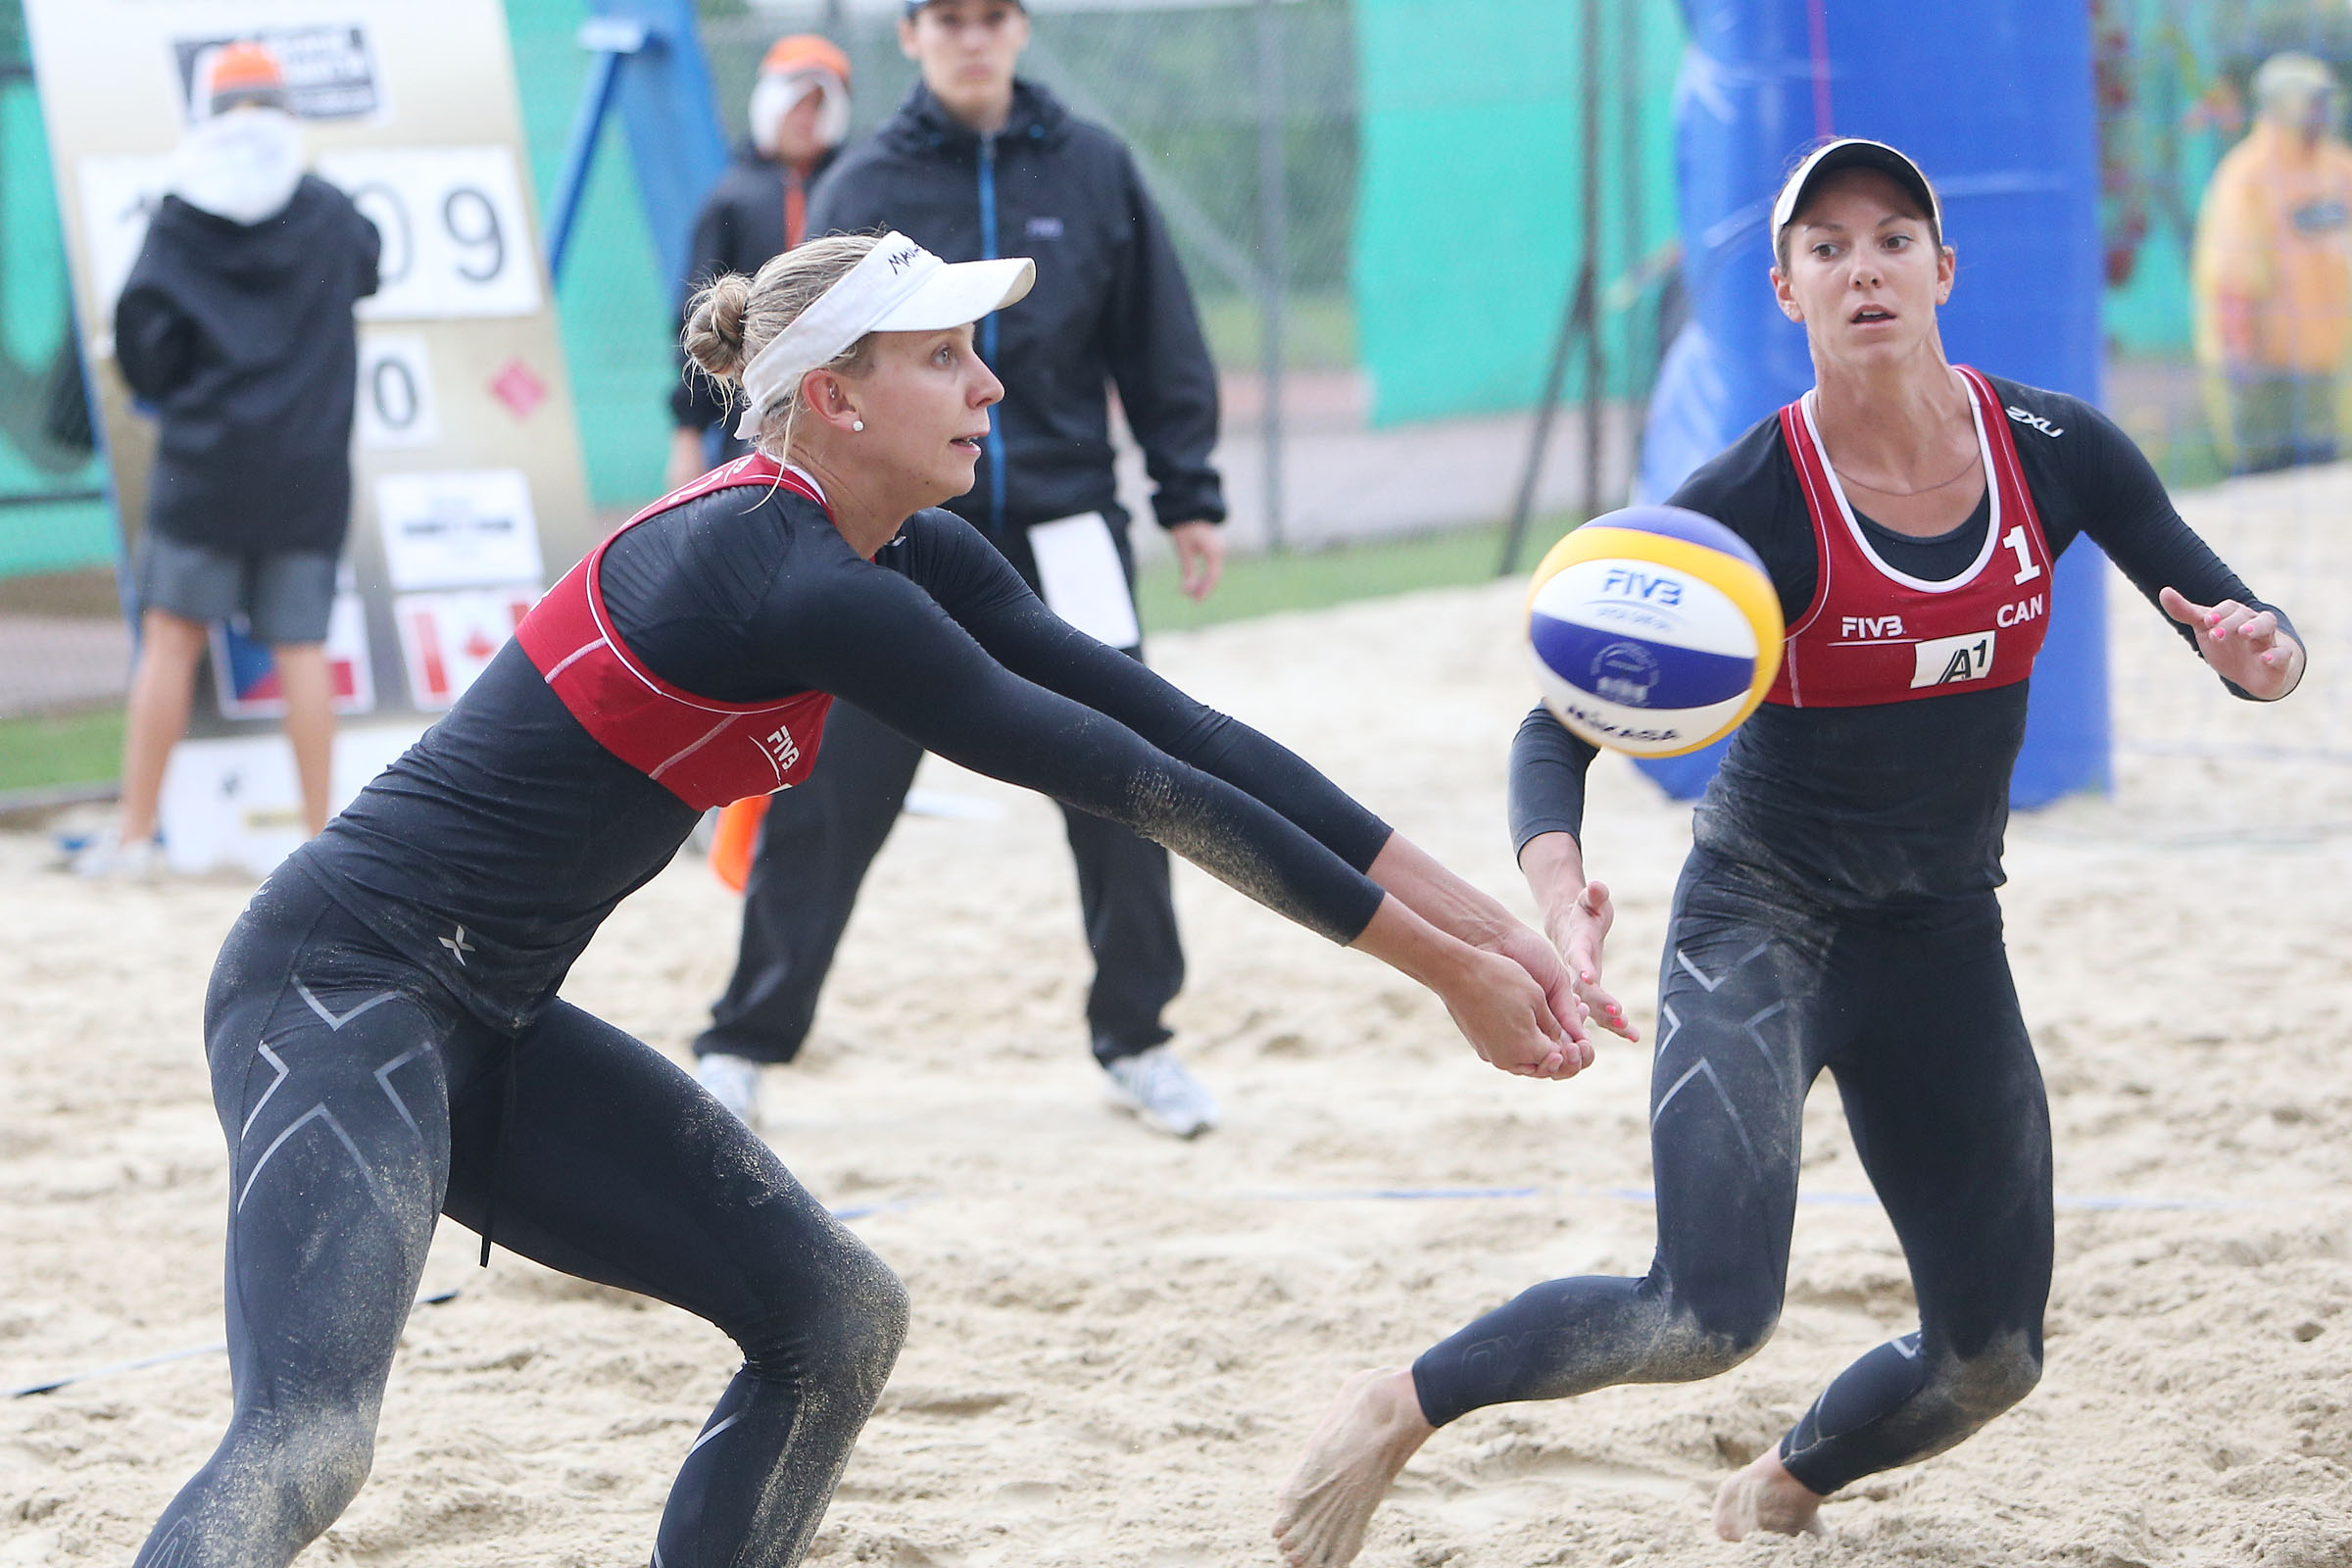 Kristina Valjas and Jamie Broder hold a 1-1 record so far in Klagenfurt, and have already qualified for the next round